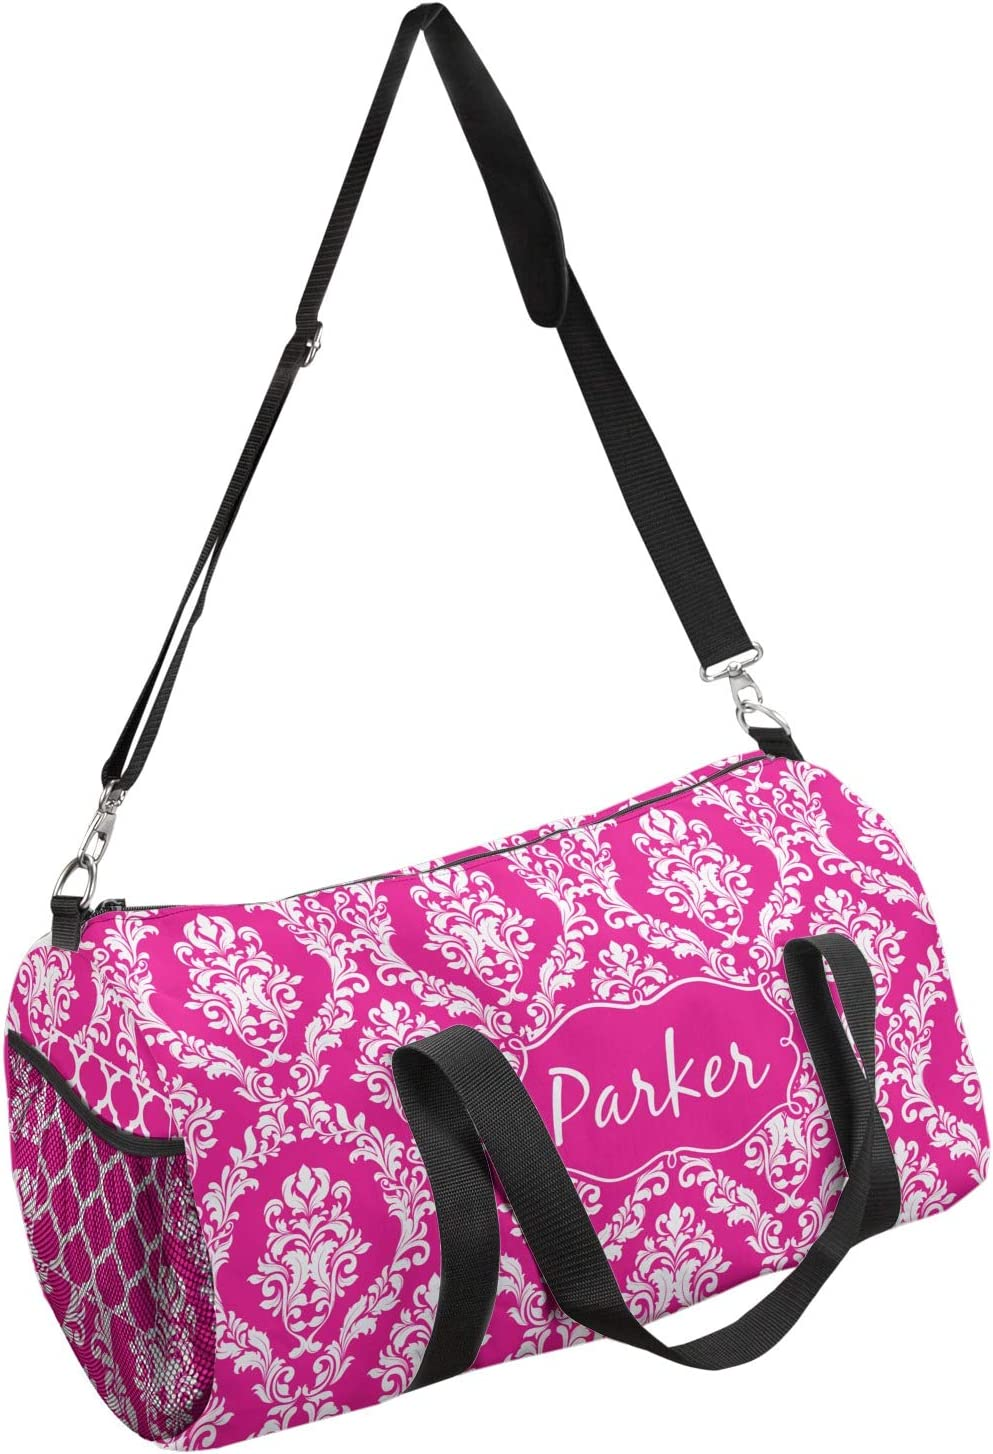 YouCustomizeIt Moroccan /& Damask Duffel Bag Personalized